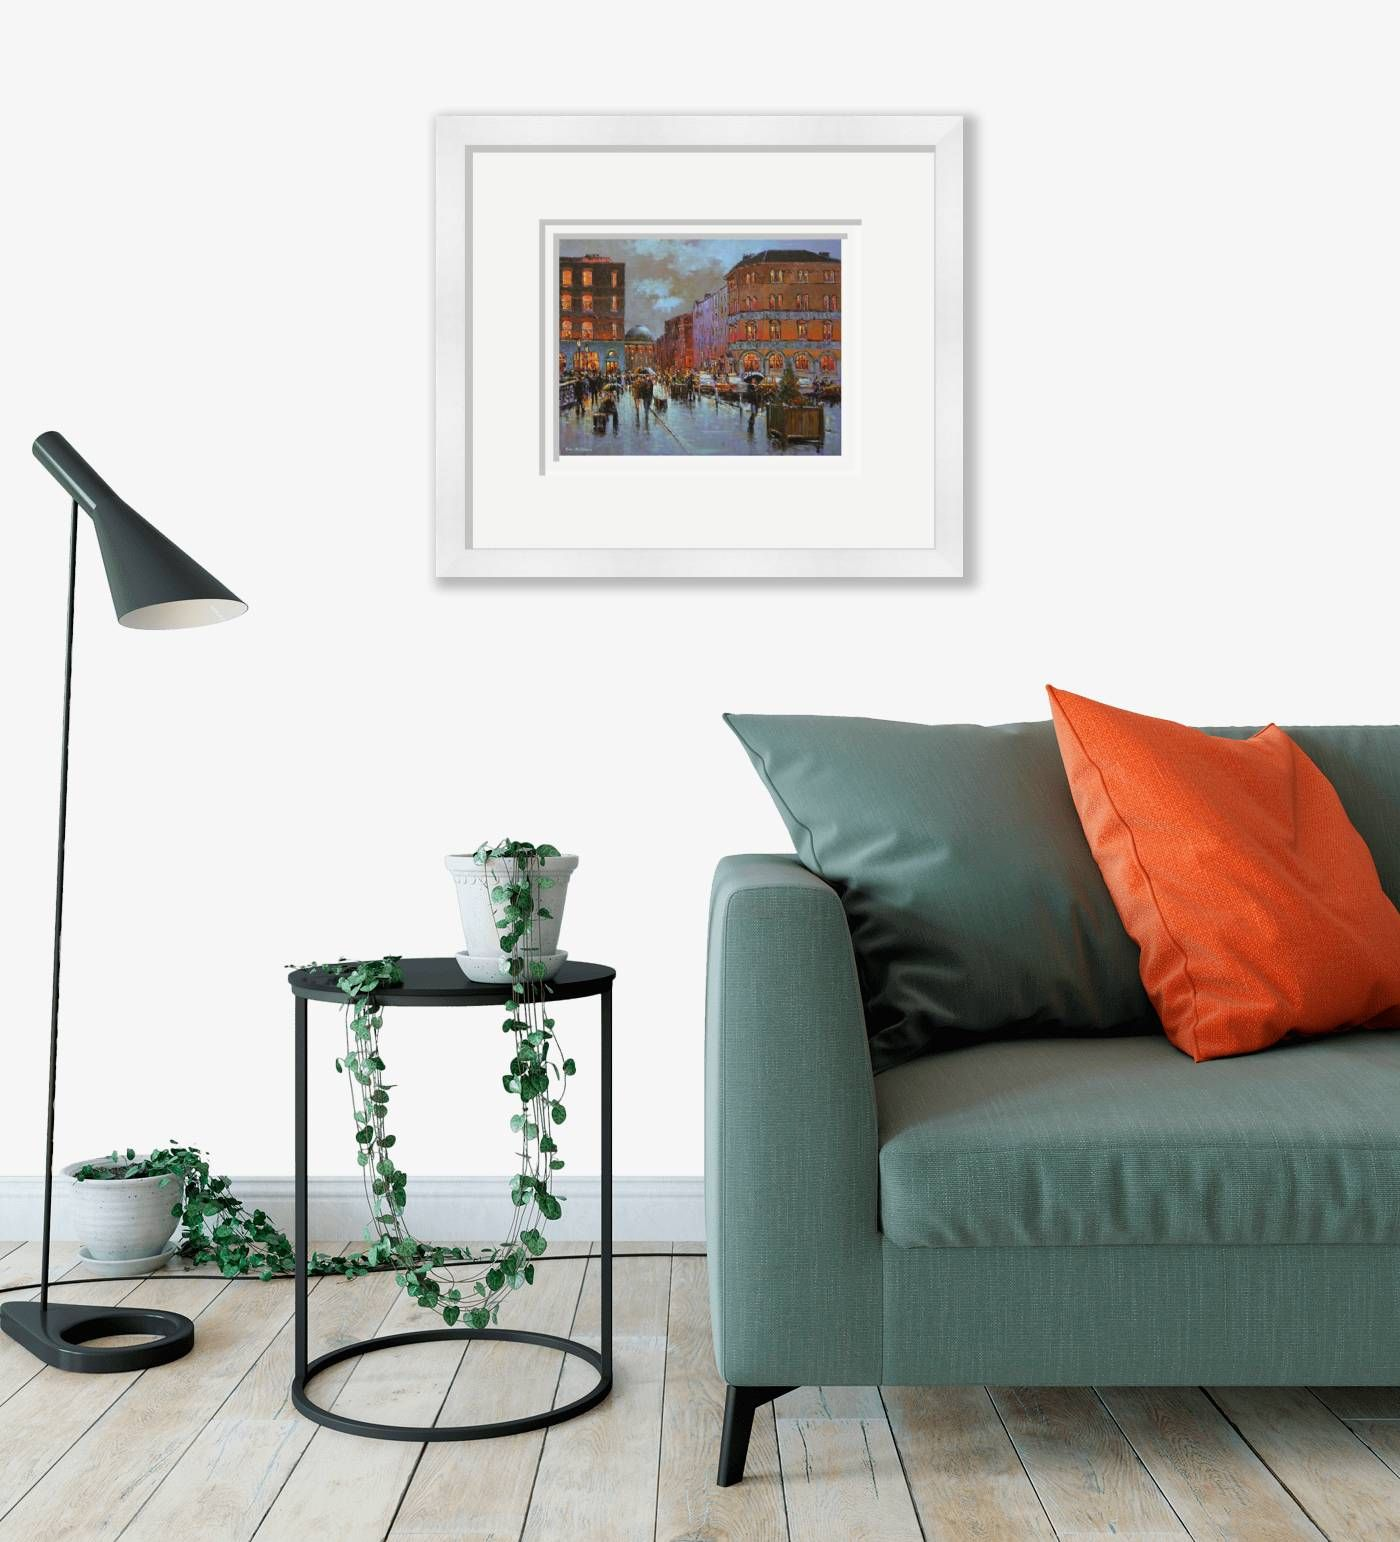 Large framed - Grattan Bridge and Parliament Street, Dublin - 109 by Chris McMorrow